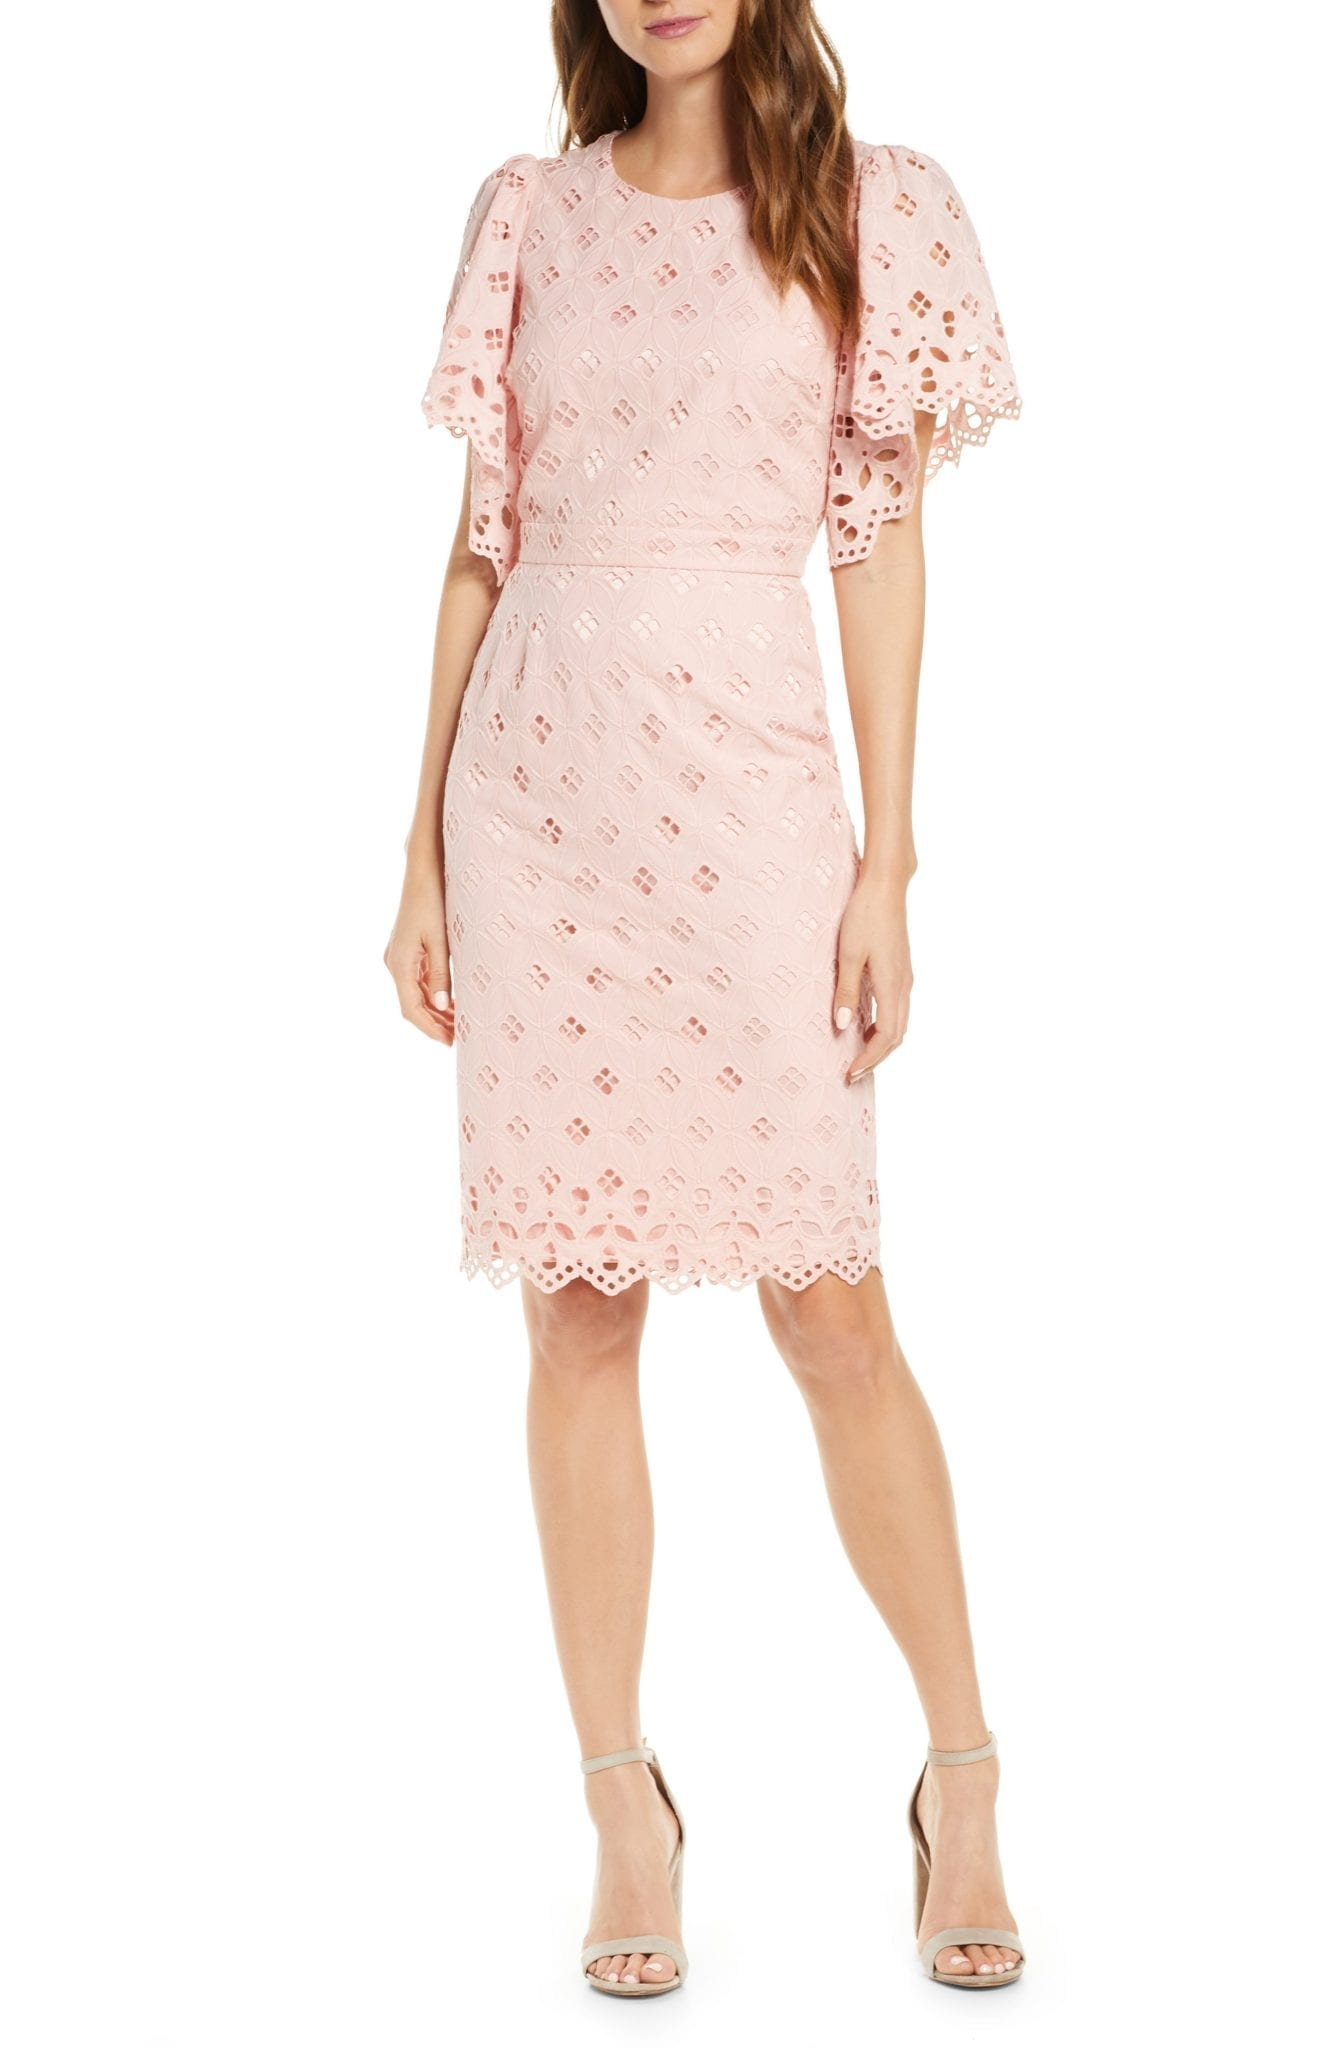 RACHEL PARCELL Eyelet Sheath Dress